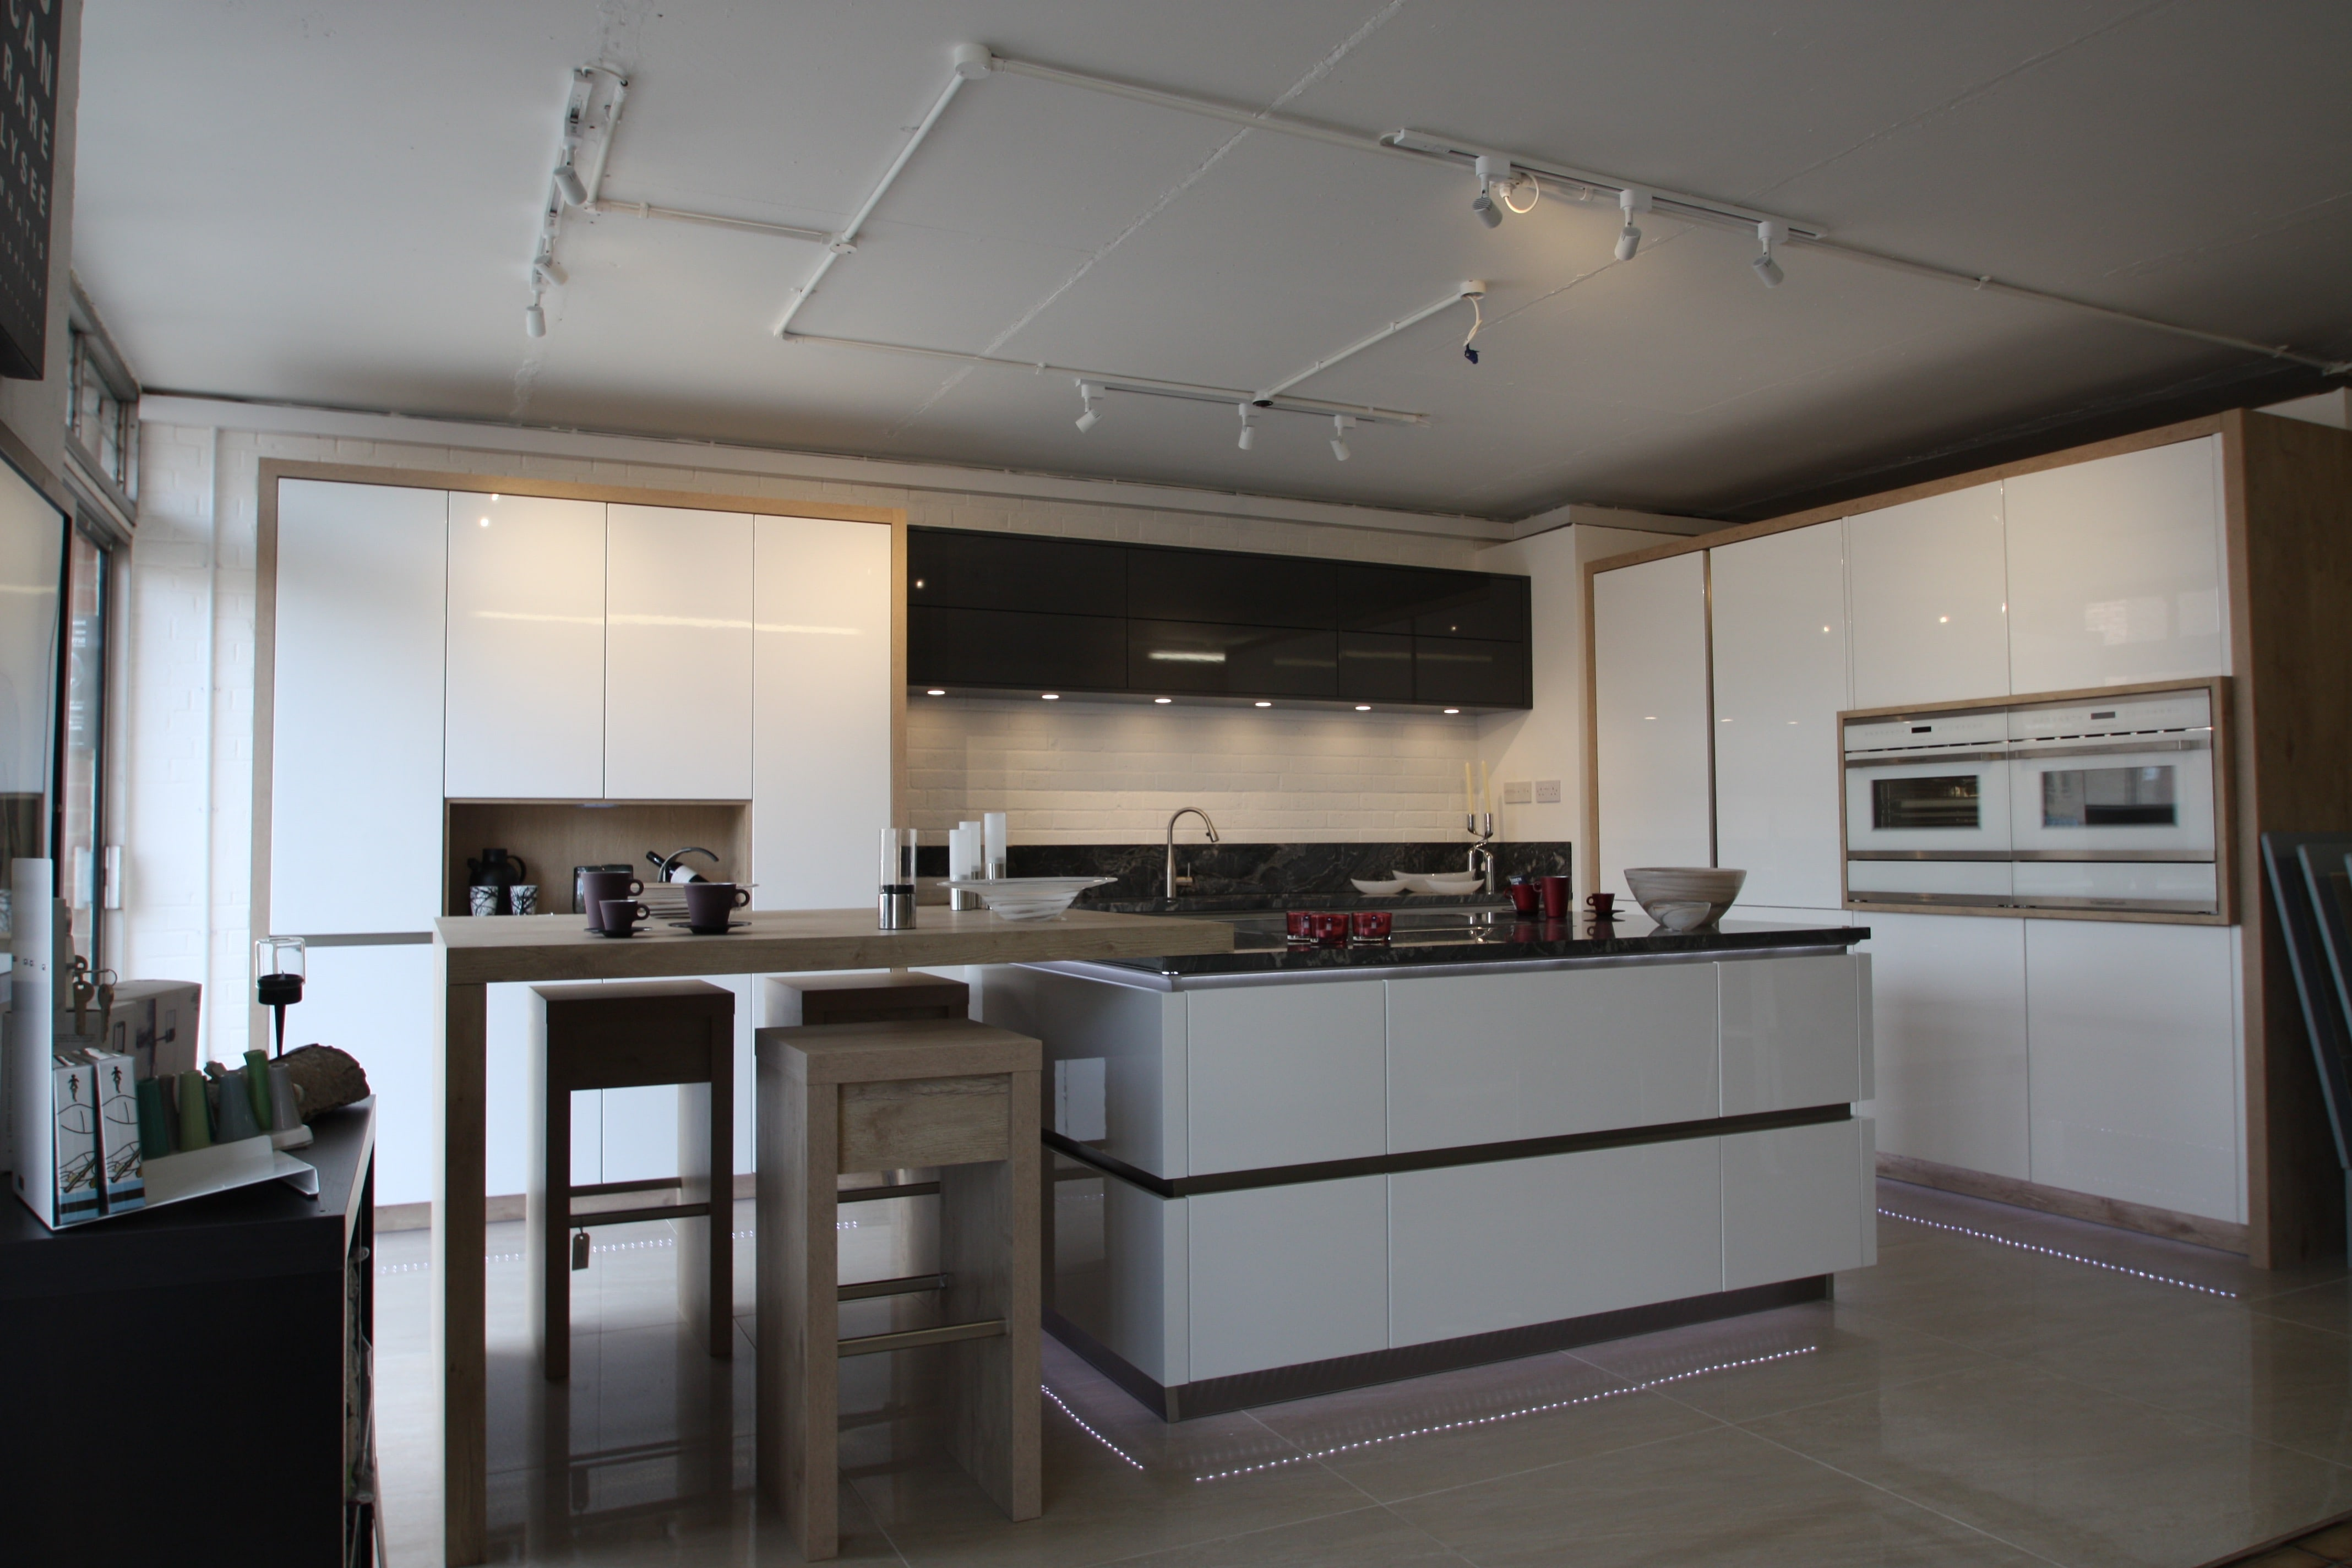 Kitchens Market Harborough 1